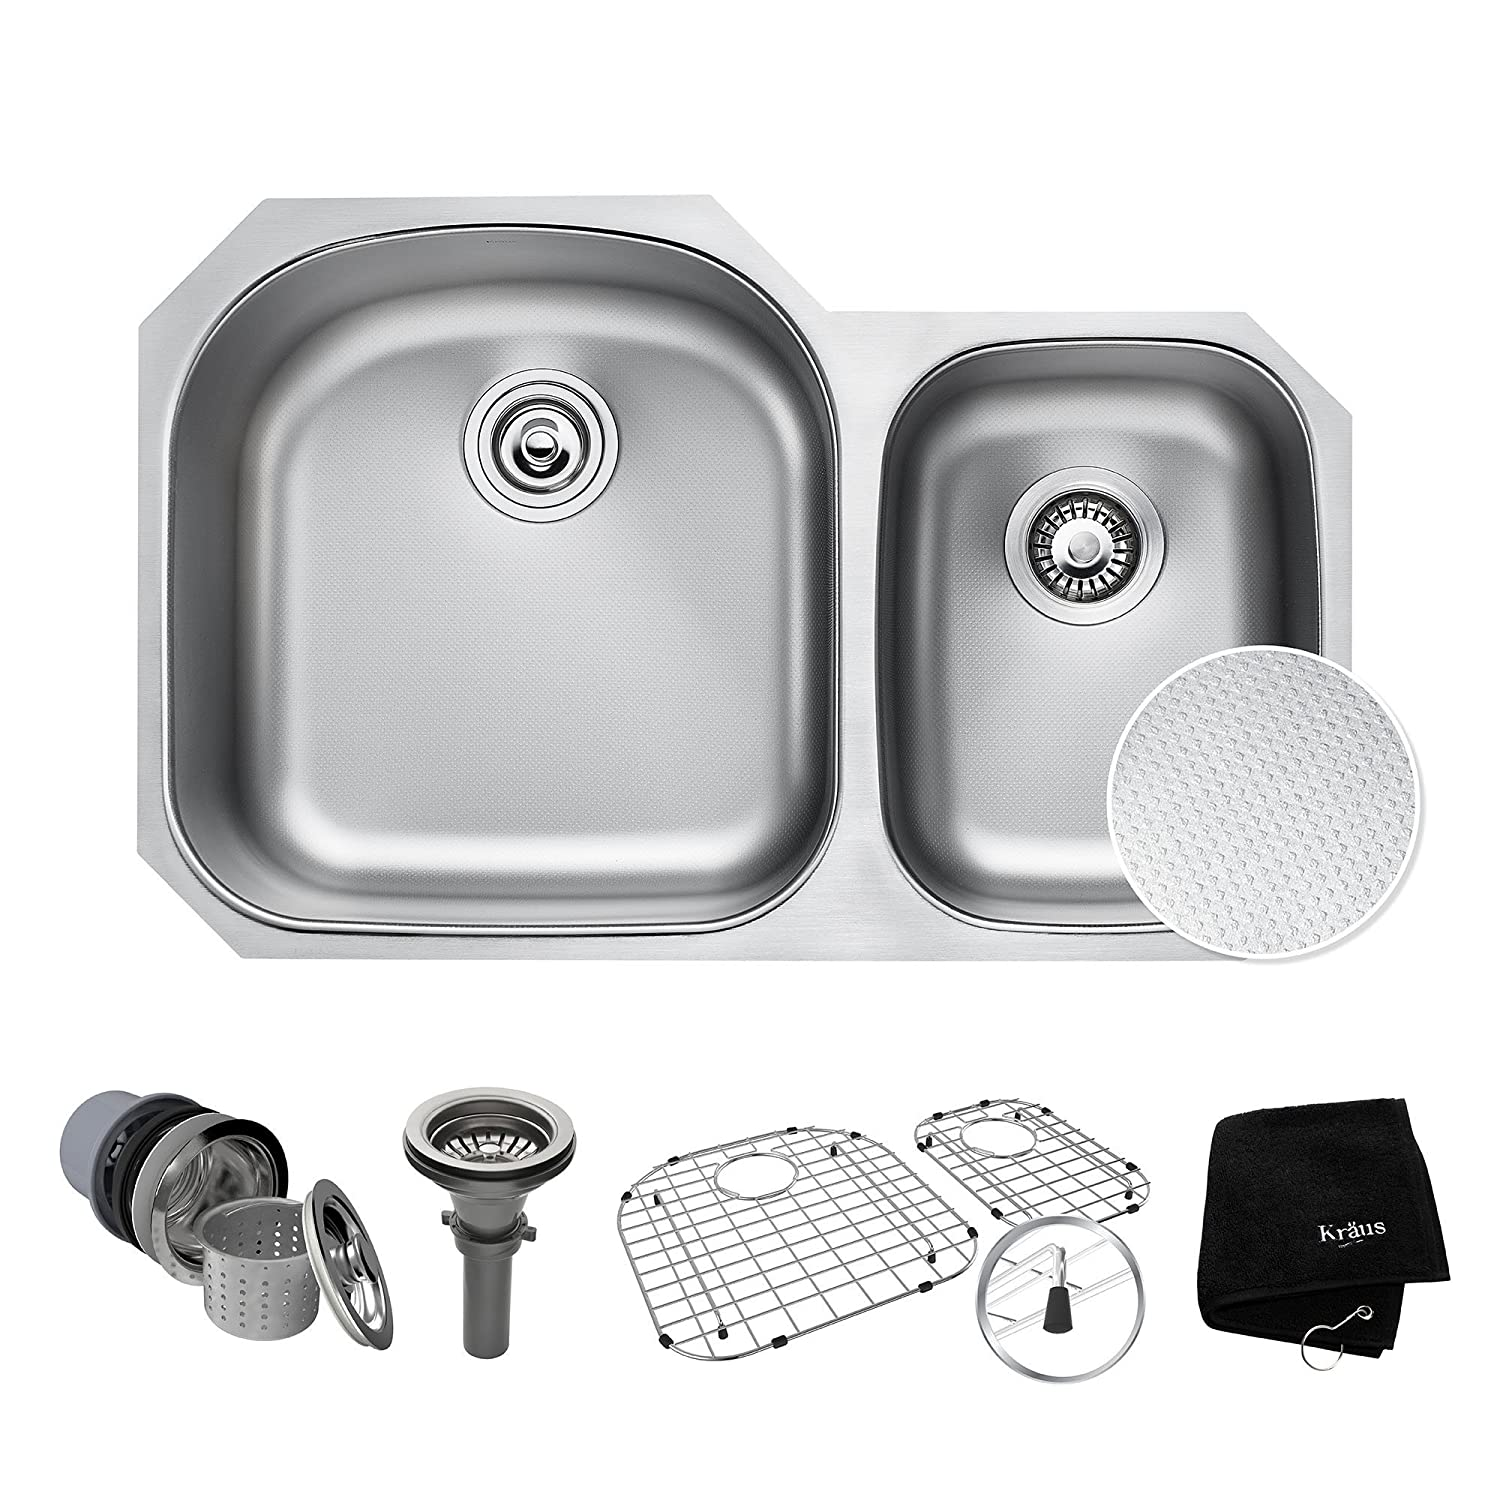 KRAUS Outlast MicroShield Scratch-Resist Stainless Steel Undermount 60 40 Double Bowl Sink, 32 16 Gauge, Premier Series KBU23E